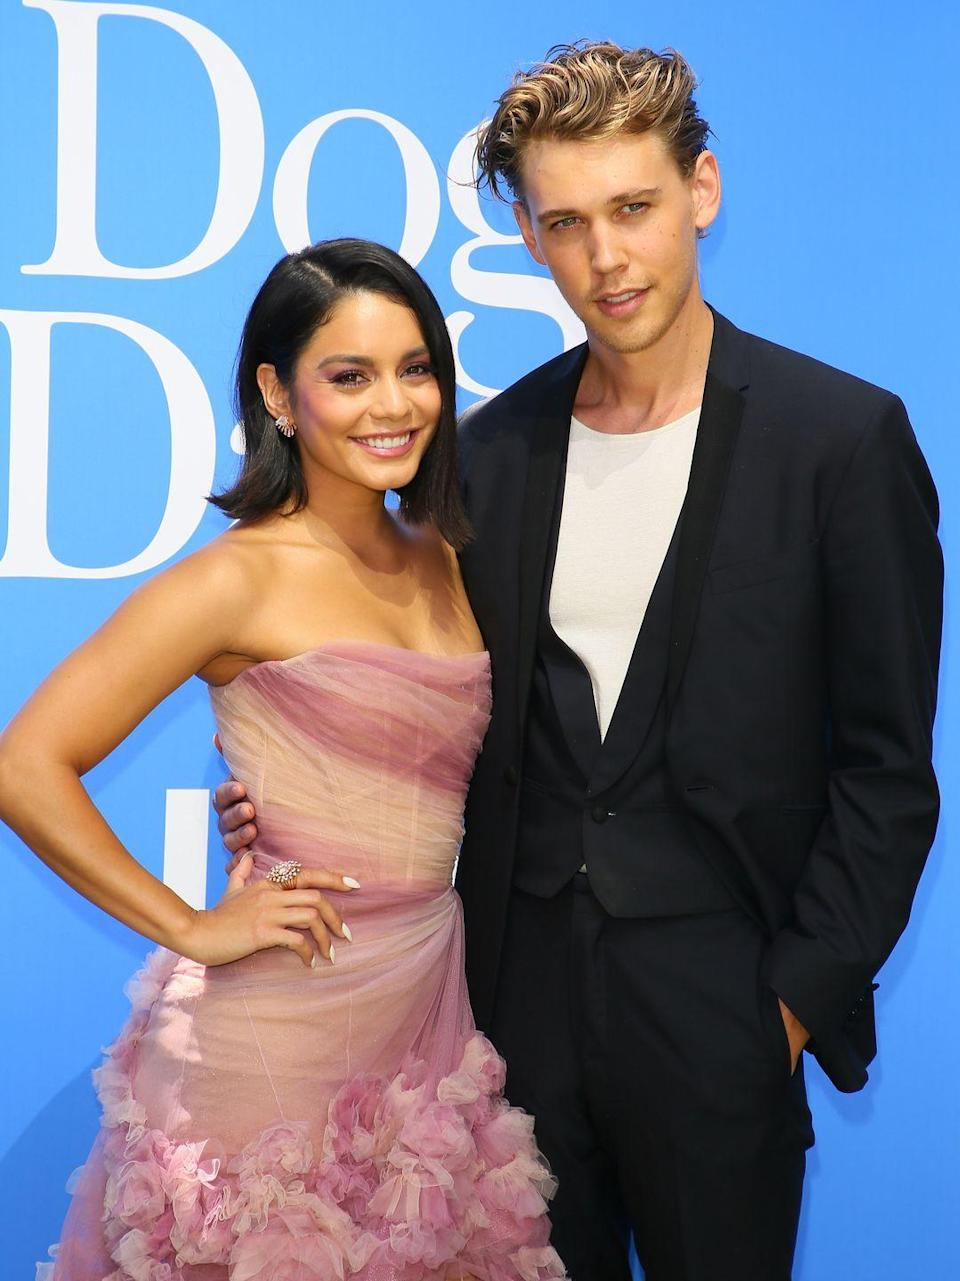 "<p>Vanessa Hudgens and Austin Butler's relationship didn't stand a chance, because it began after the actress split from her <em>High School Musical </em>costar, Zac Efron. Fans have not so secretly held a torch for the Disney couple to reunite, even urging <a href=""https://metro.co.uk/2020/01/16/zac-efron-urged-get-head-game-date-vanessa-hudgens-austin-butler-split-12068356/"" rel=""nofollow noopener"" target=""_blank"" data-ylk=""slk:the Disney stars"" class=""link rapid-noclick-resp"">the Disney stars</a> to get back together after Vanessa and Austin split.</p>"